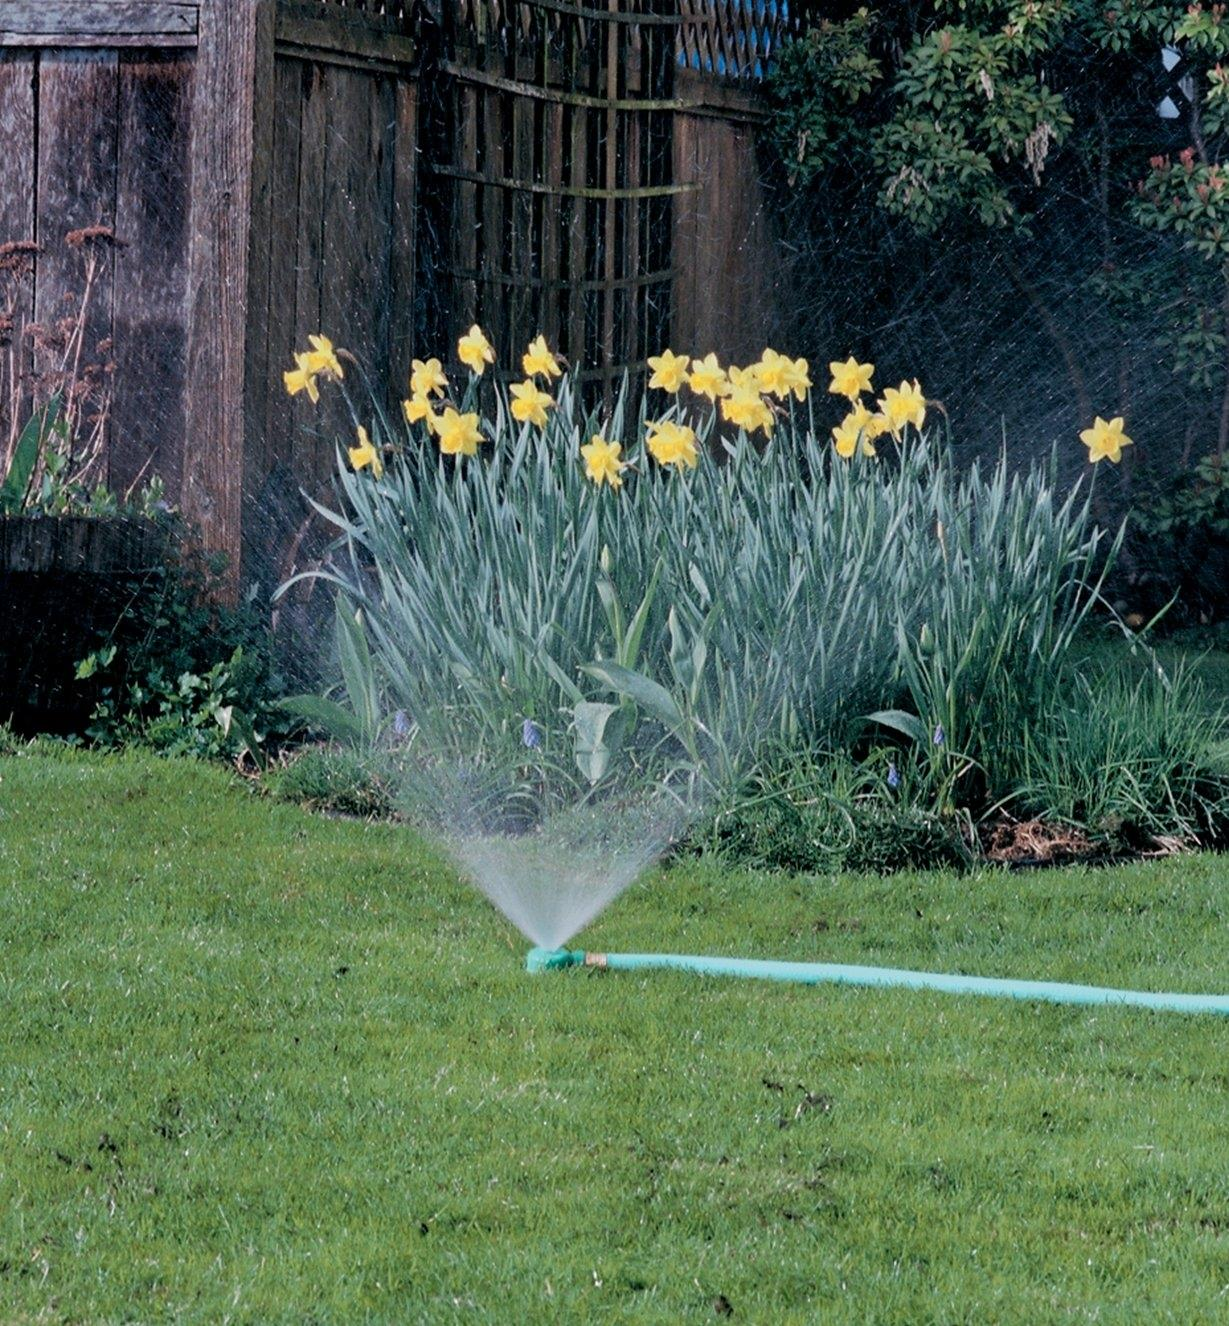 Spot Sprinkler being used to water daffodils